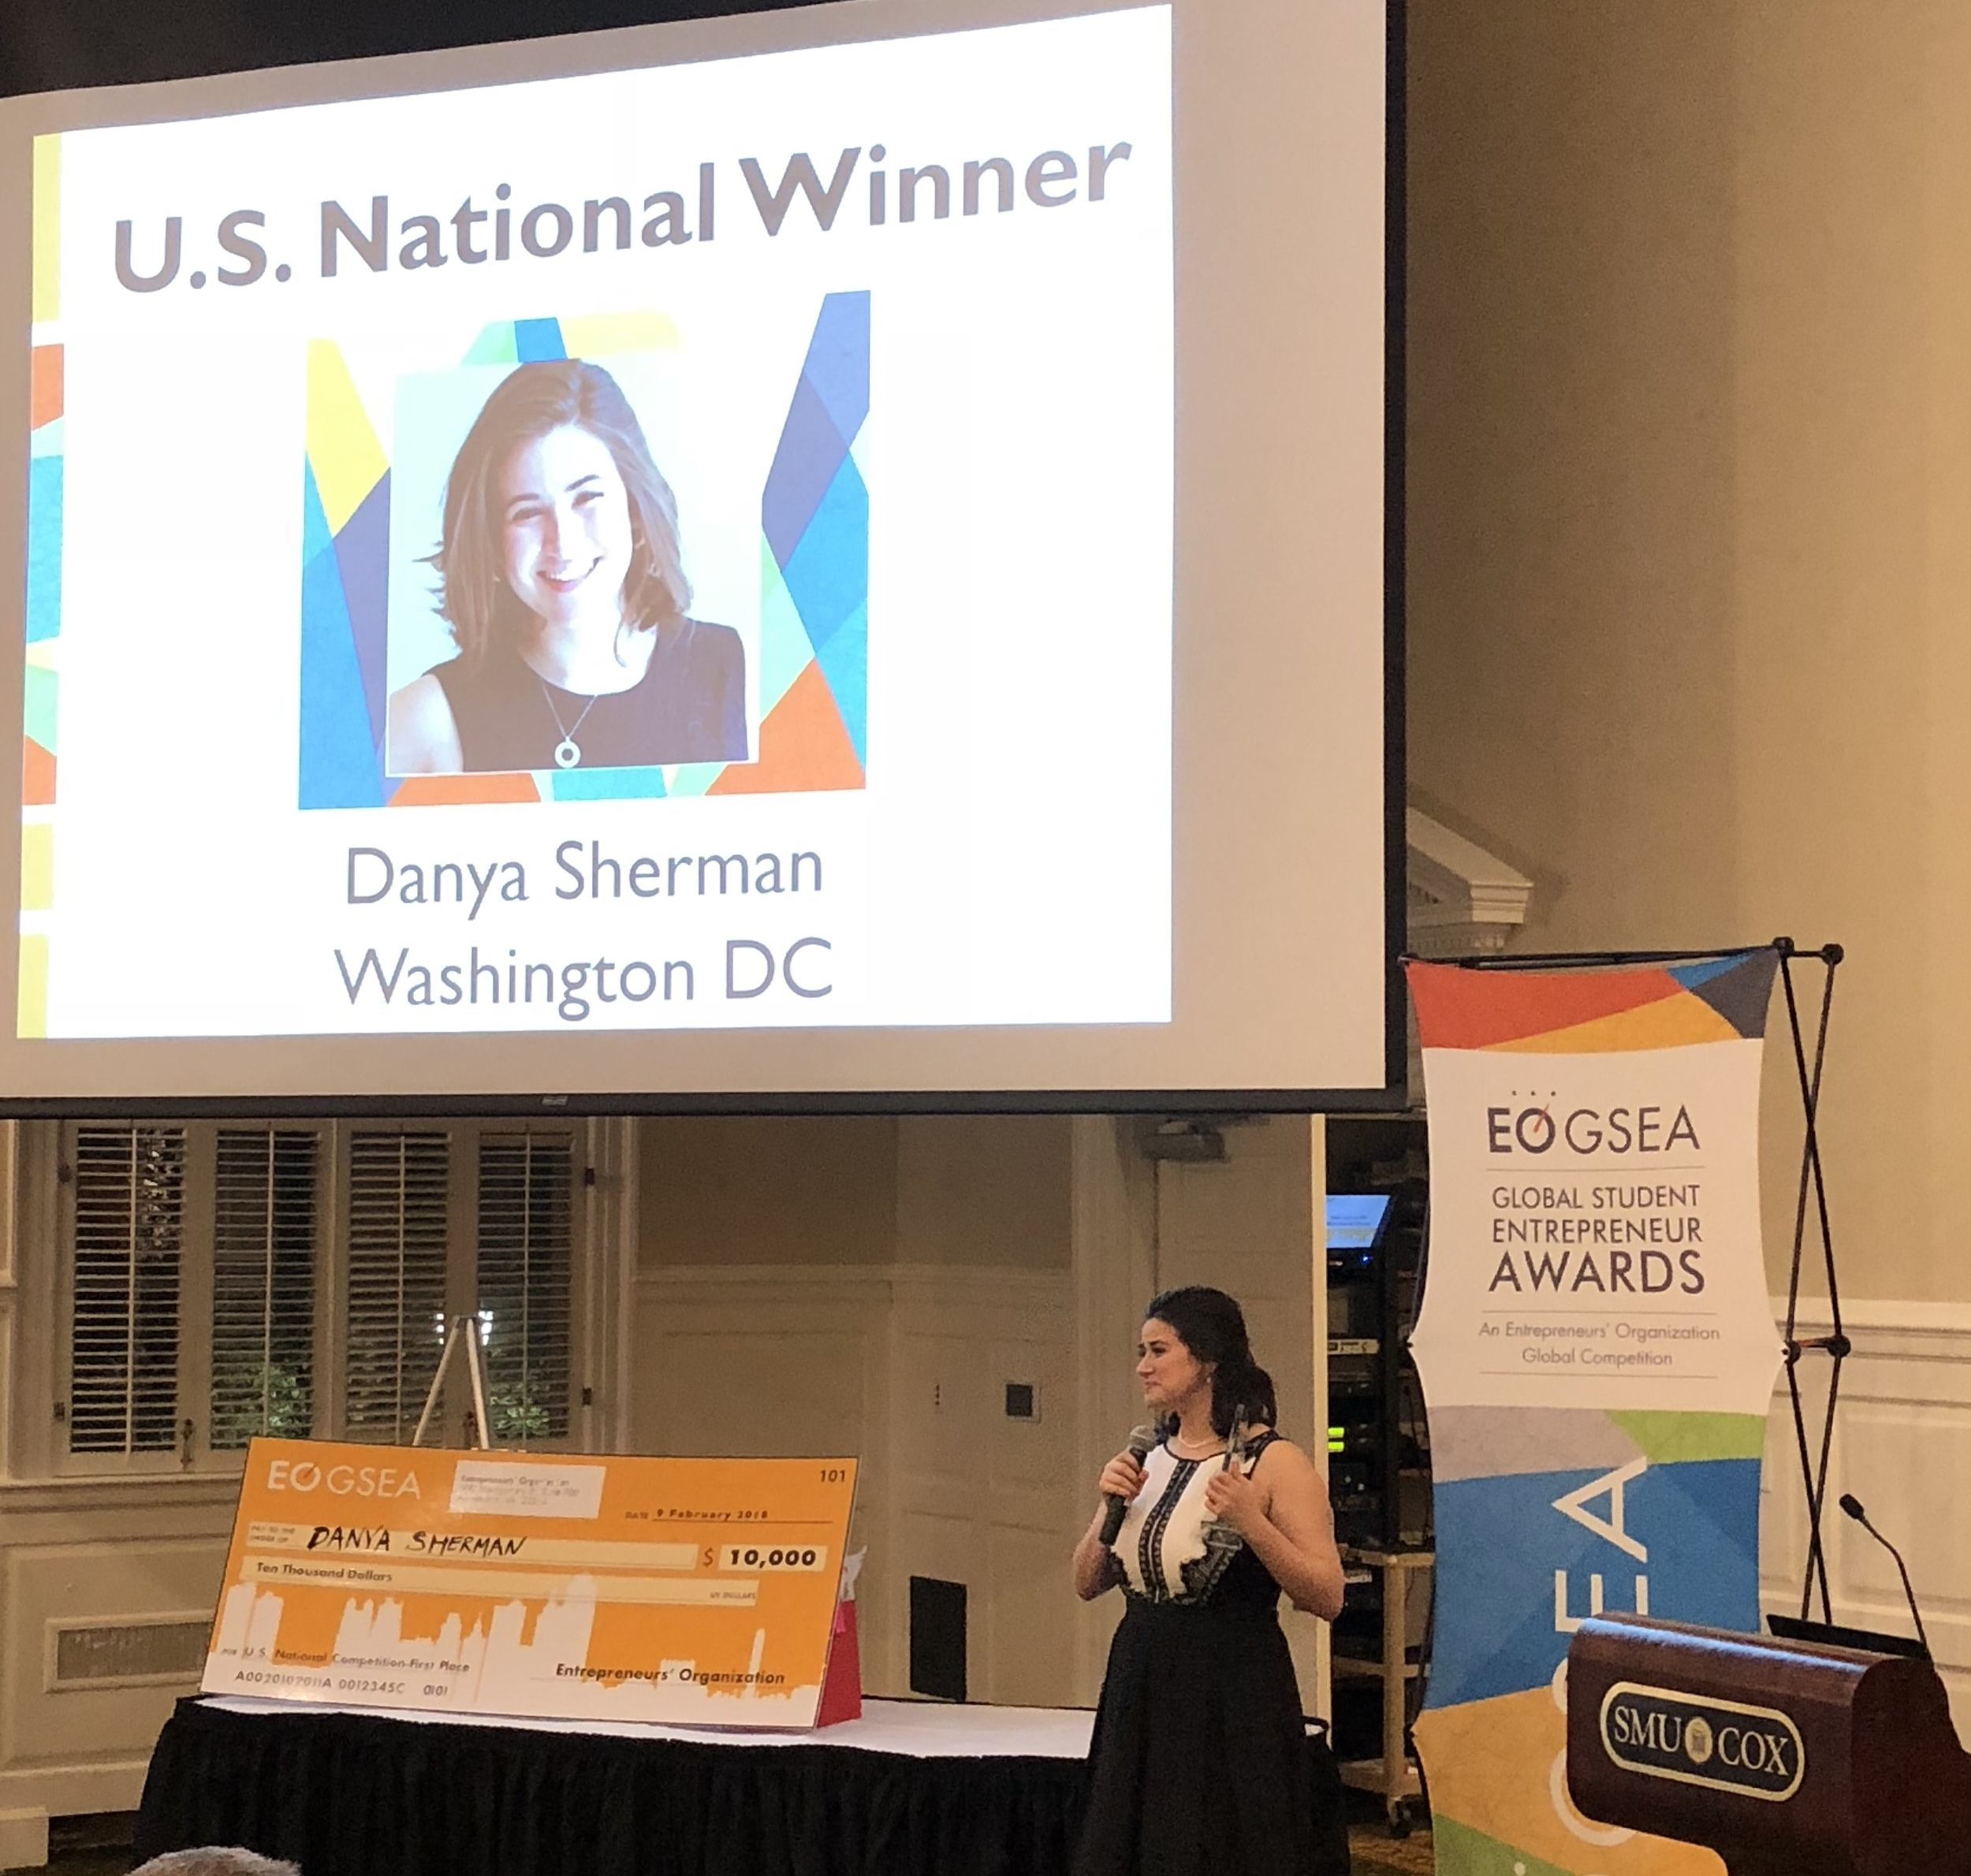 Danya Sherman, US National Winner